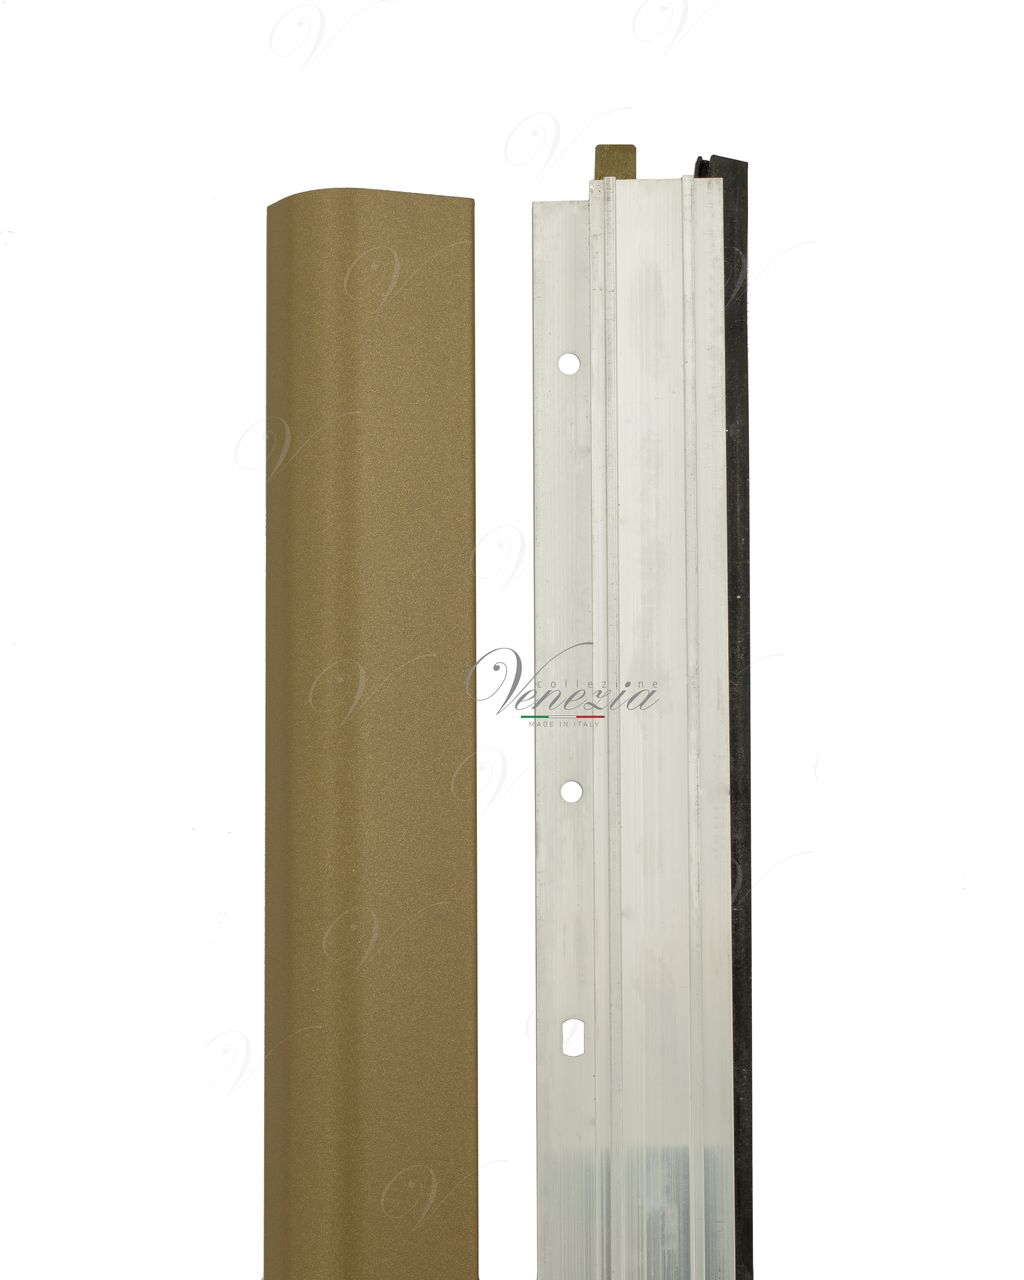 Automatic Bottom Door Seal (external) Venezia 1450/700 mm With One Ajustable Point (Brown)